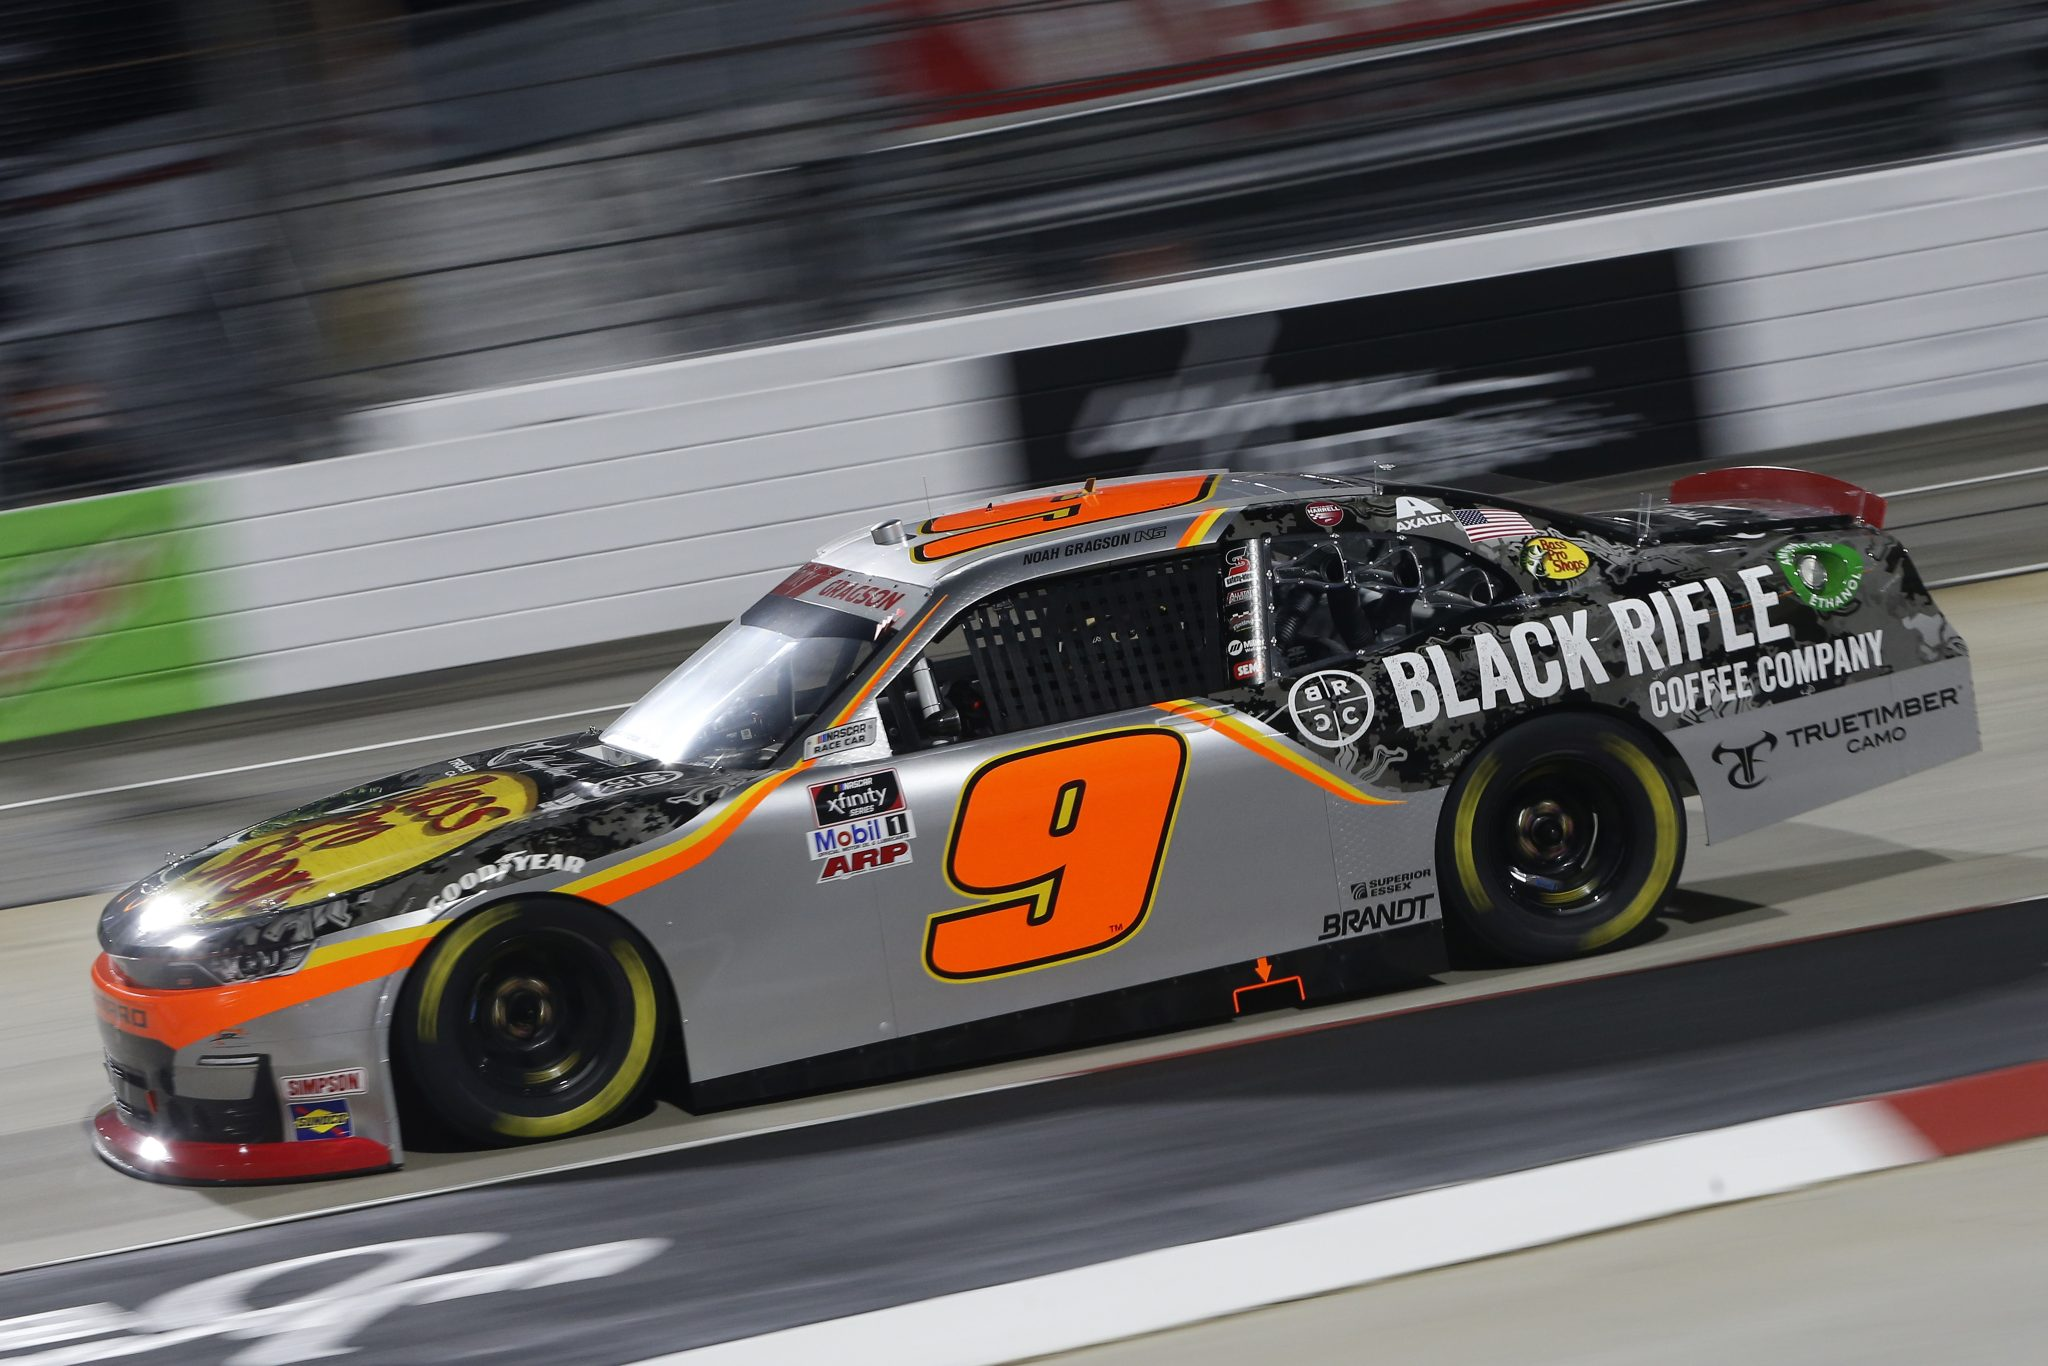 MARTINSVILLE, VIRGINIA - APRIL 09: Noah Gragson, driver of the #9 Bsas Pro Shops/True Timber/BRCC Chevrolet, drives during the NASCAR Xfinity Series Cook Out 250 at Martinsville Speedway on April 09, 2021 in Martinsville, Virginia. (Photo by Brian Lawdermilk/Getty Images) | Getty Images